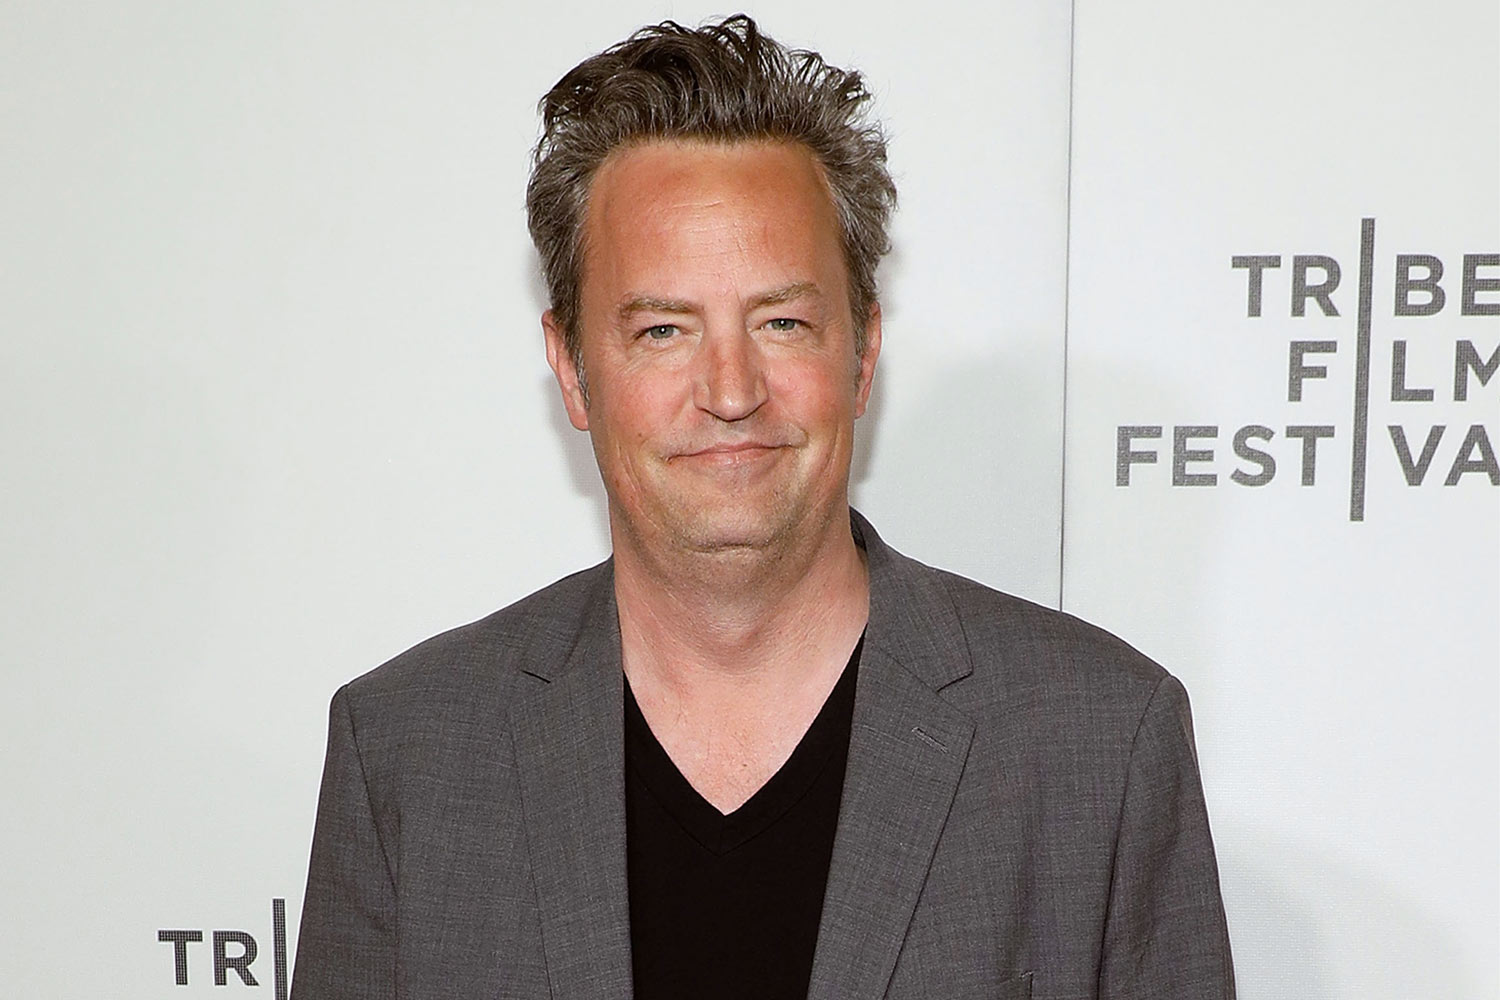 Matthew Perry Splits from Fiancée Molly Hurwitz: 'Sometimes Things Just Don't Work Out' | PEOPLE.com